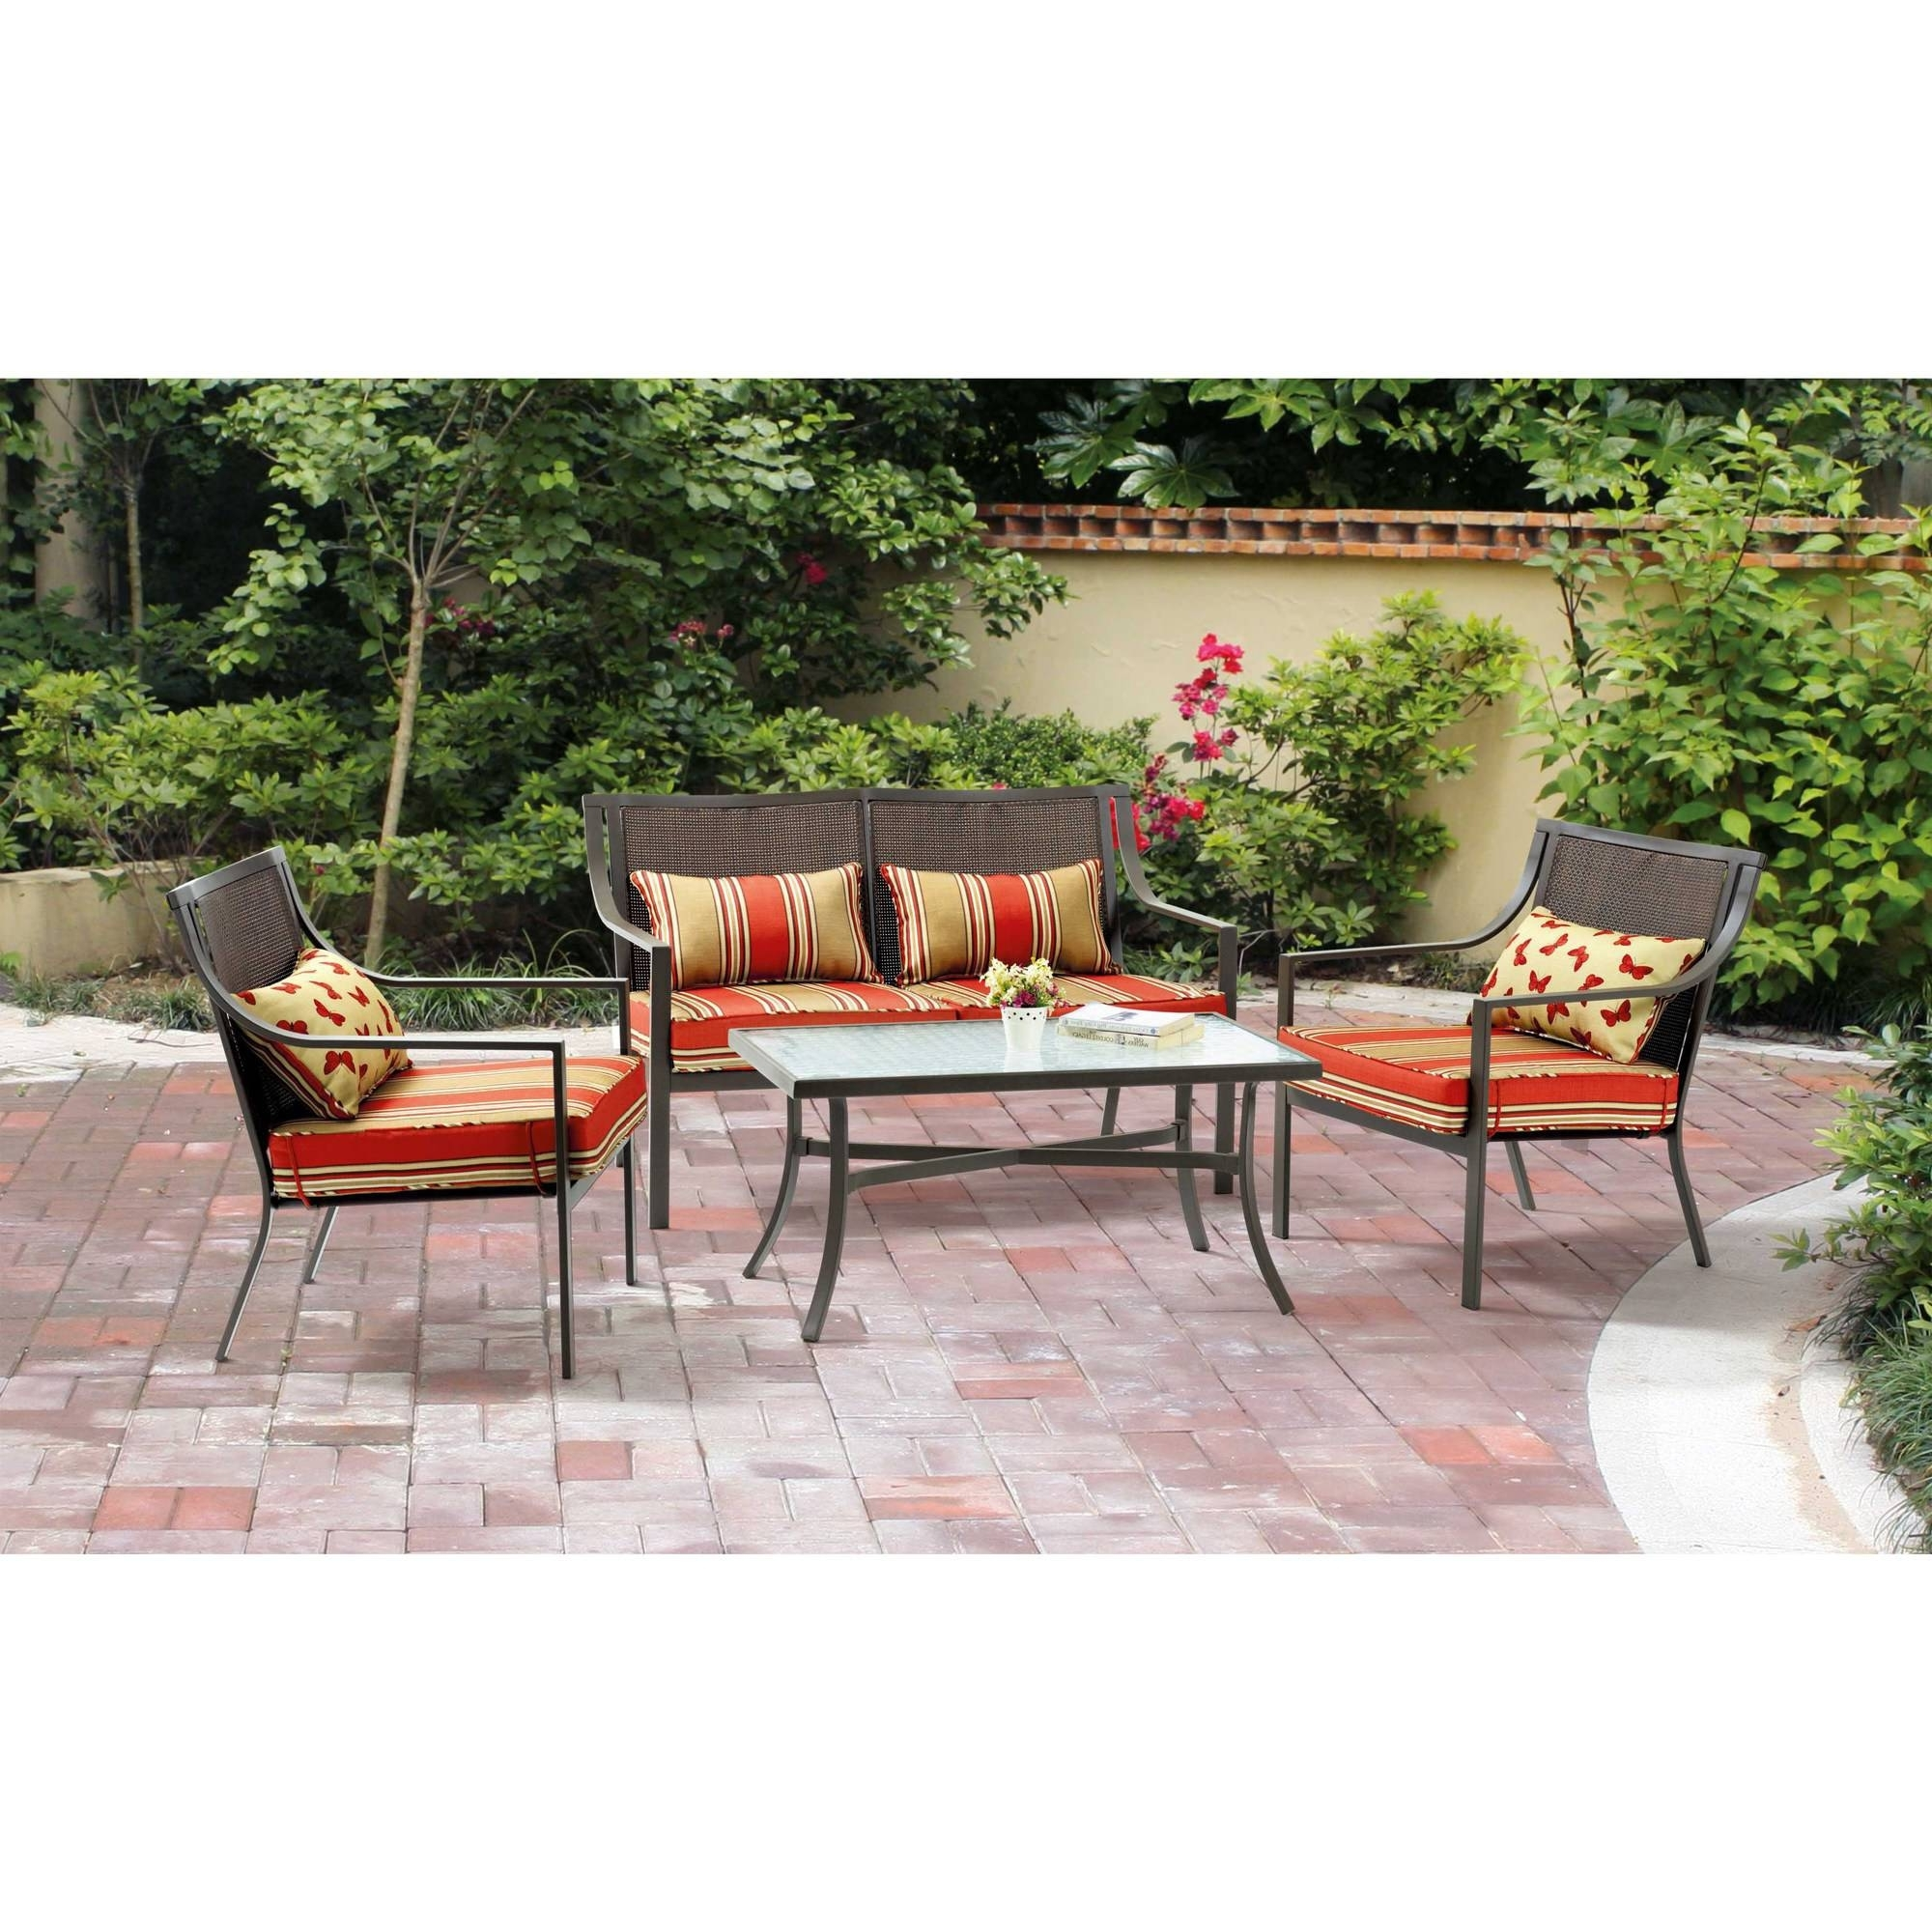 Mainstays Alexandra Square 4 Piece Patio Conversation Set, Seats 4 Intended For Most Popular Patio Sectional Conversation Sets (View 10 of 20)